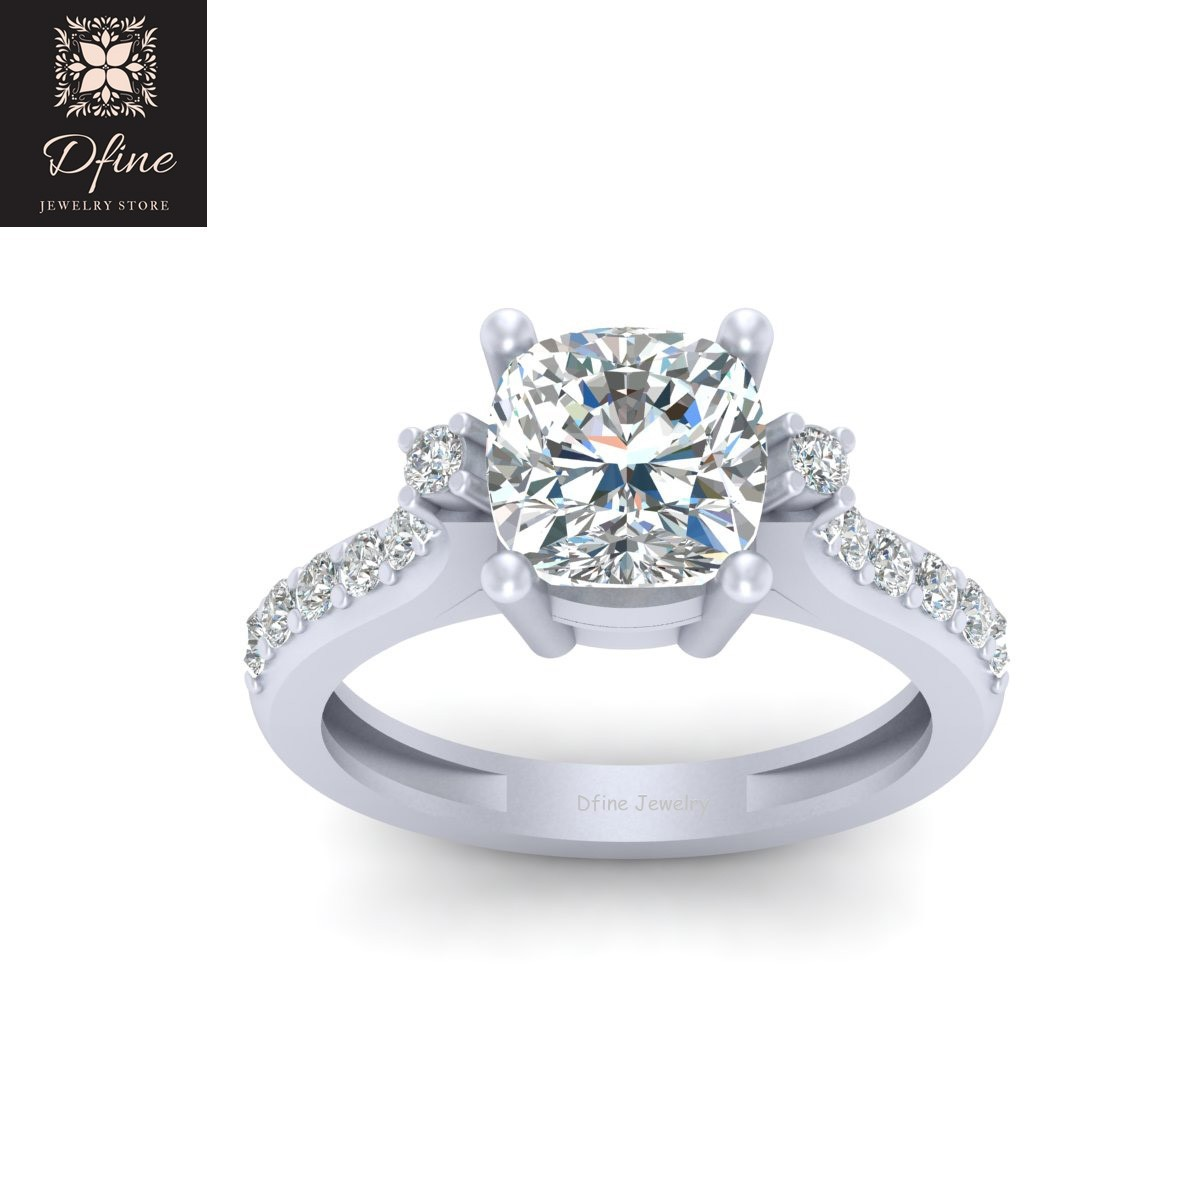 14 Year Wedding Anniversary Gift For Her: 2.65ct Cushion Cut Wedding Ring Womens Anniversary Gift